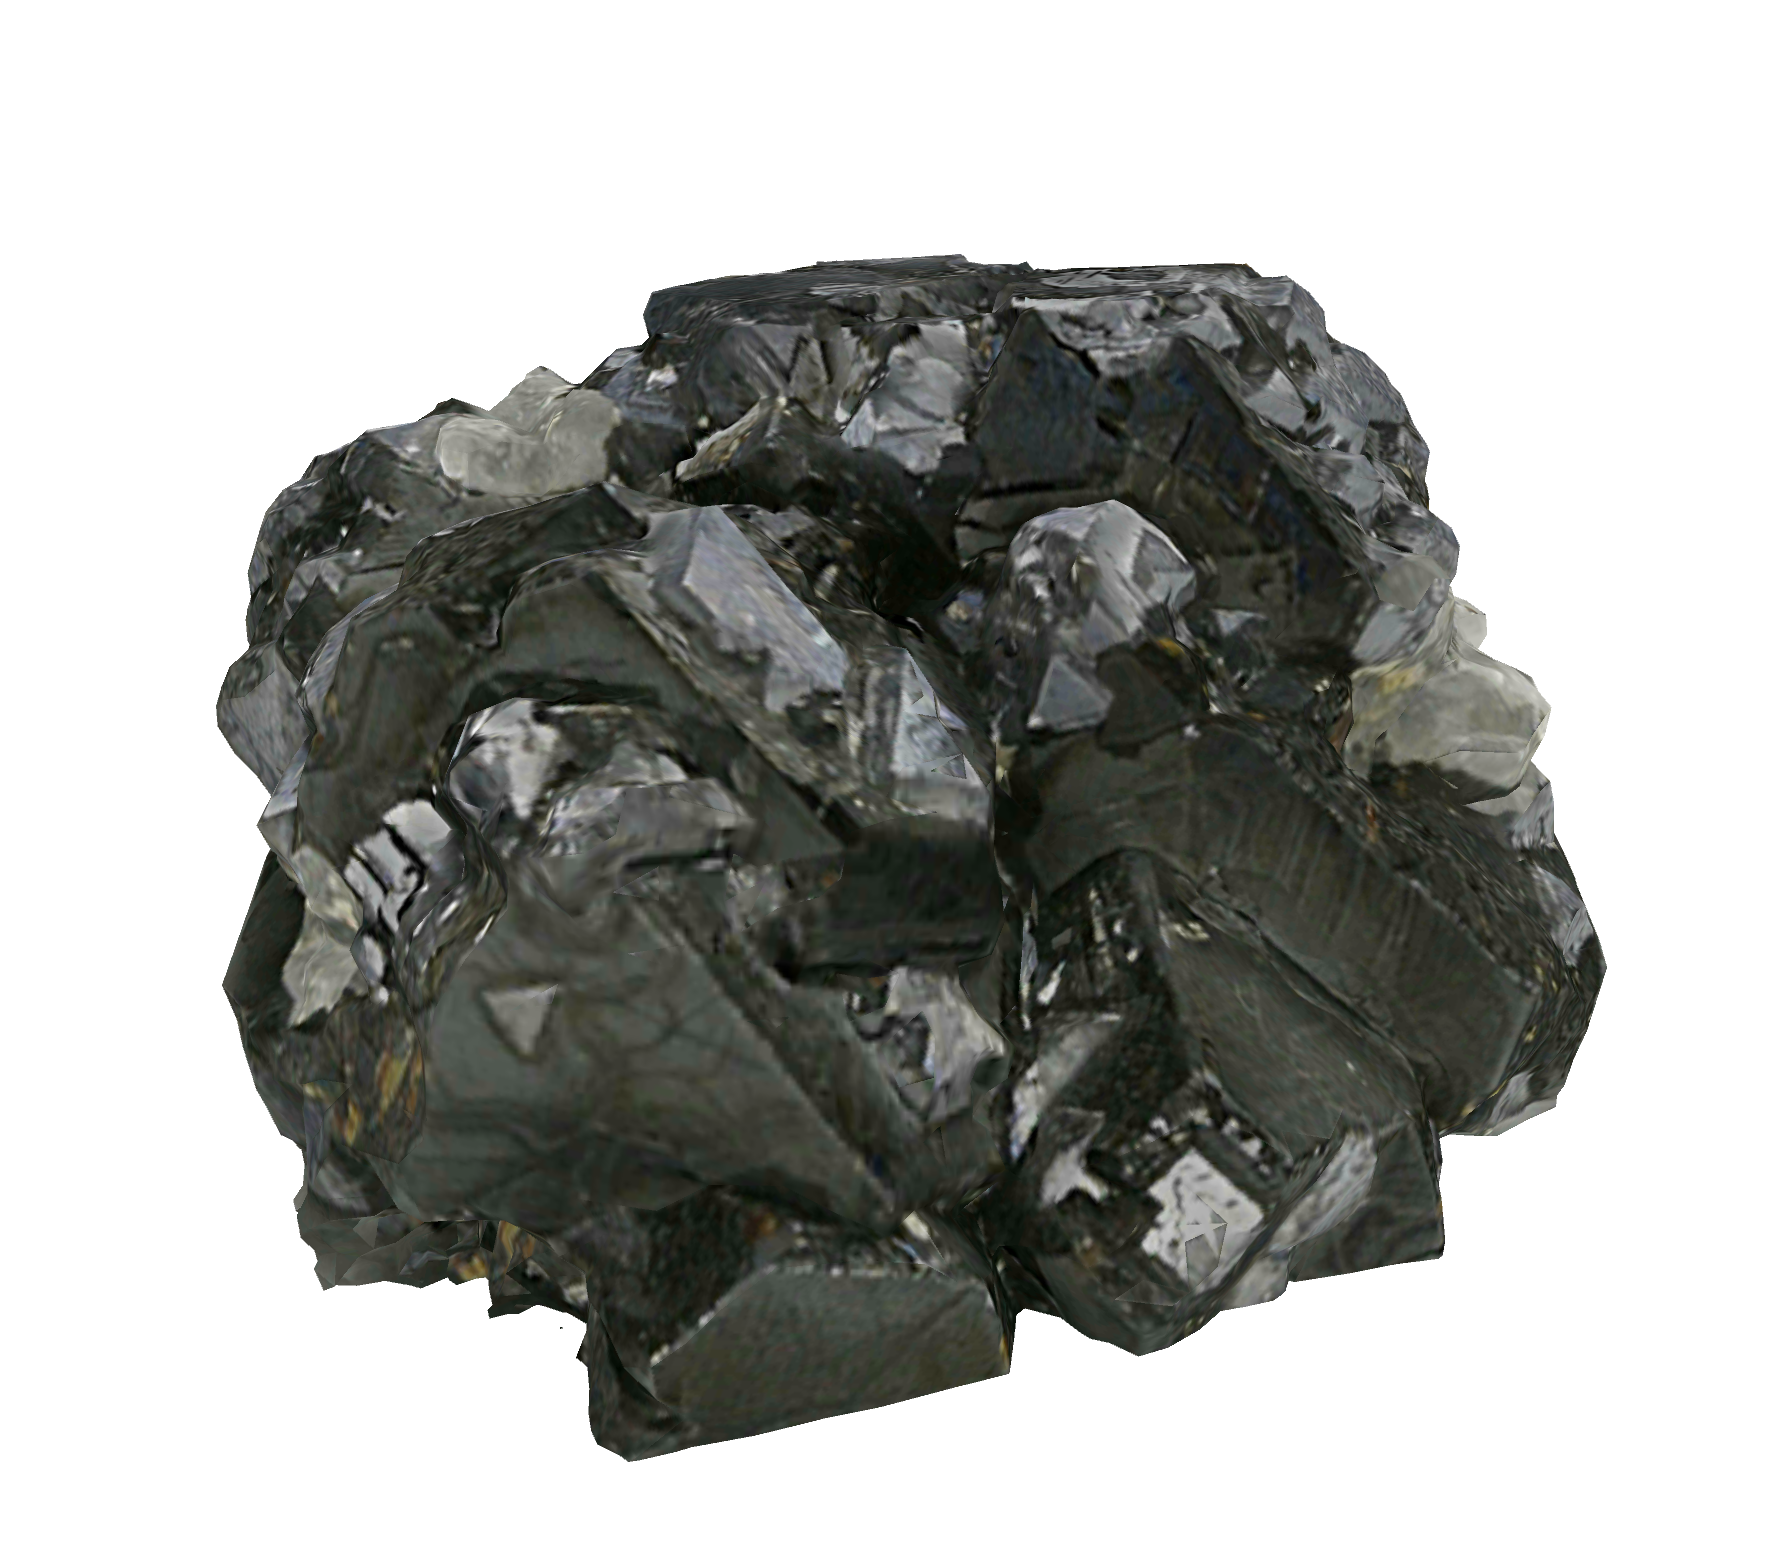 Sphalerite with Galena